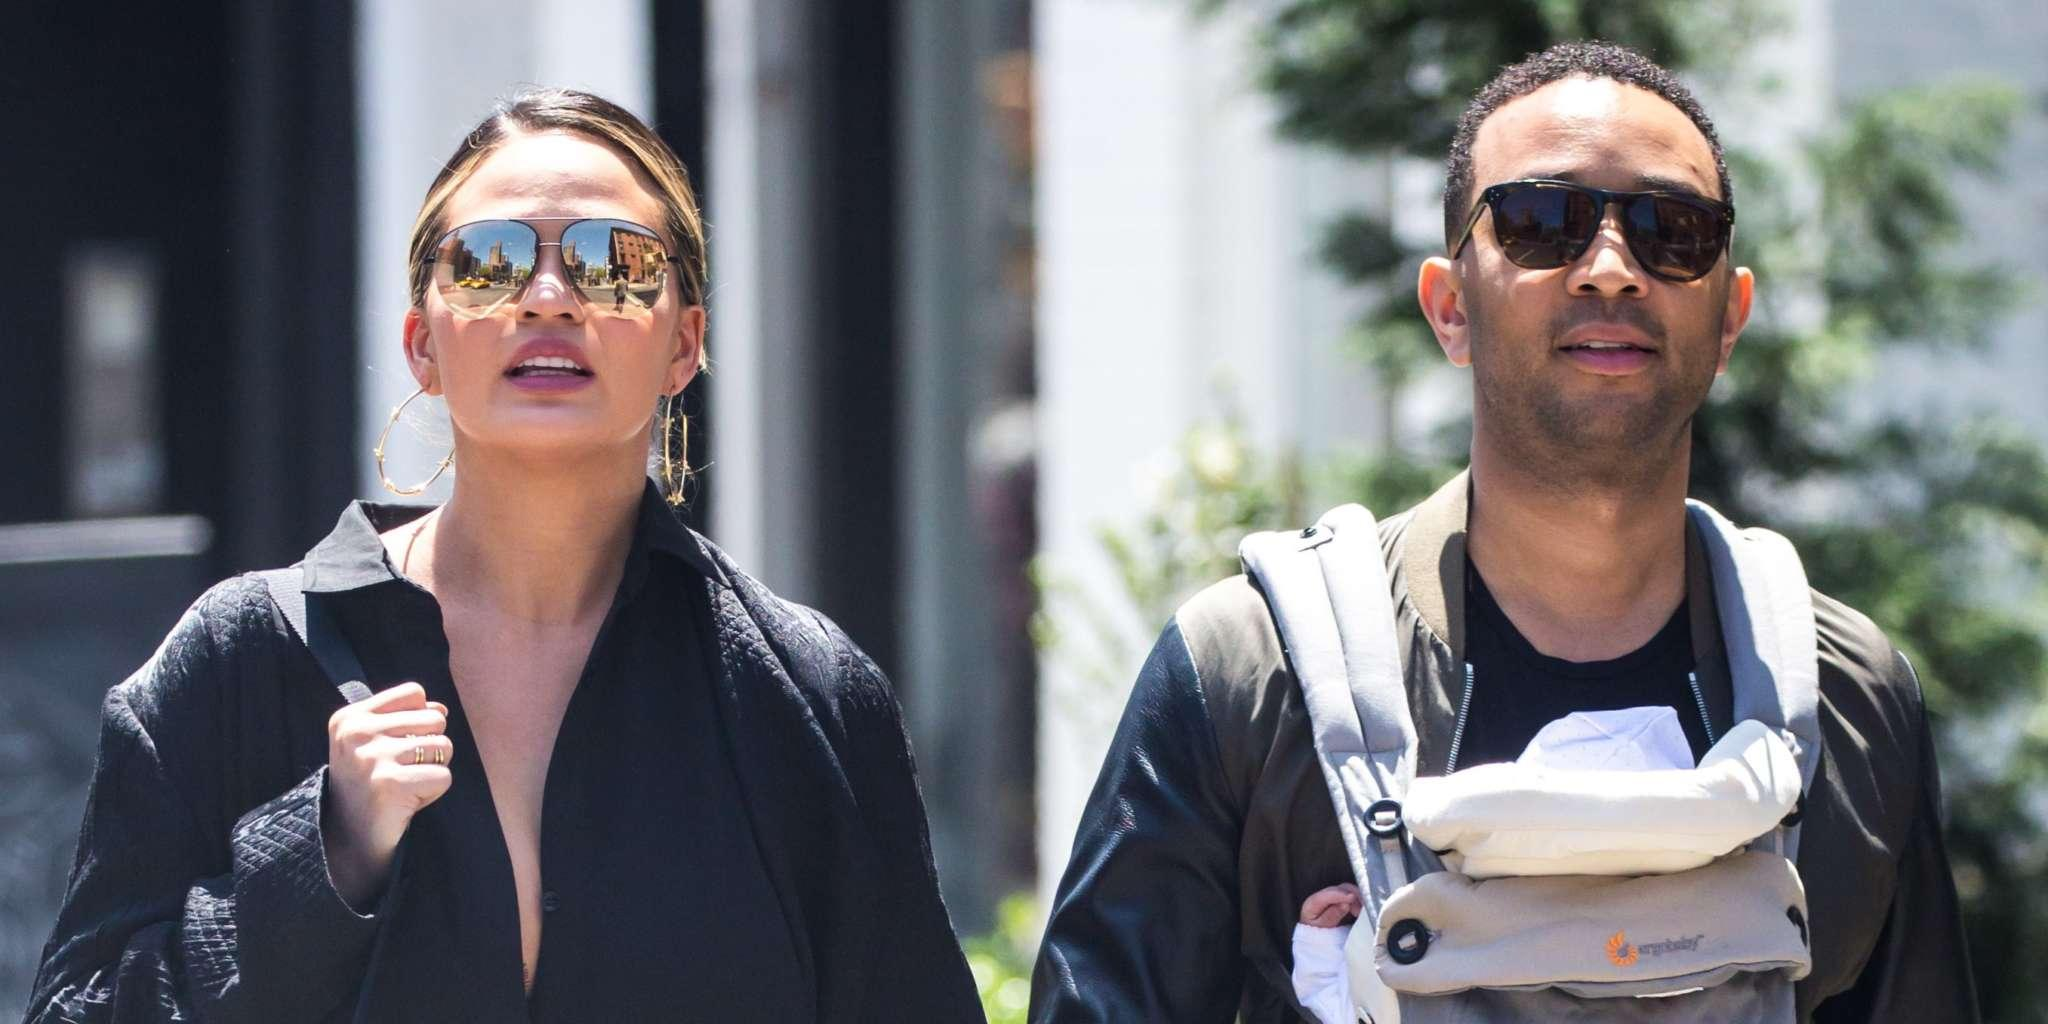 Chrissy Teigen And John Legend Are Posing With Their Kids And Fans Call Them The Most Unproblematic Couple